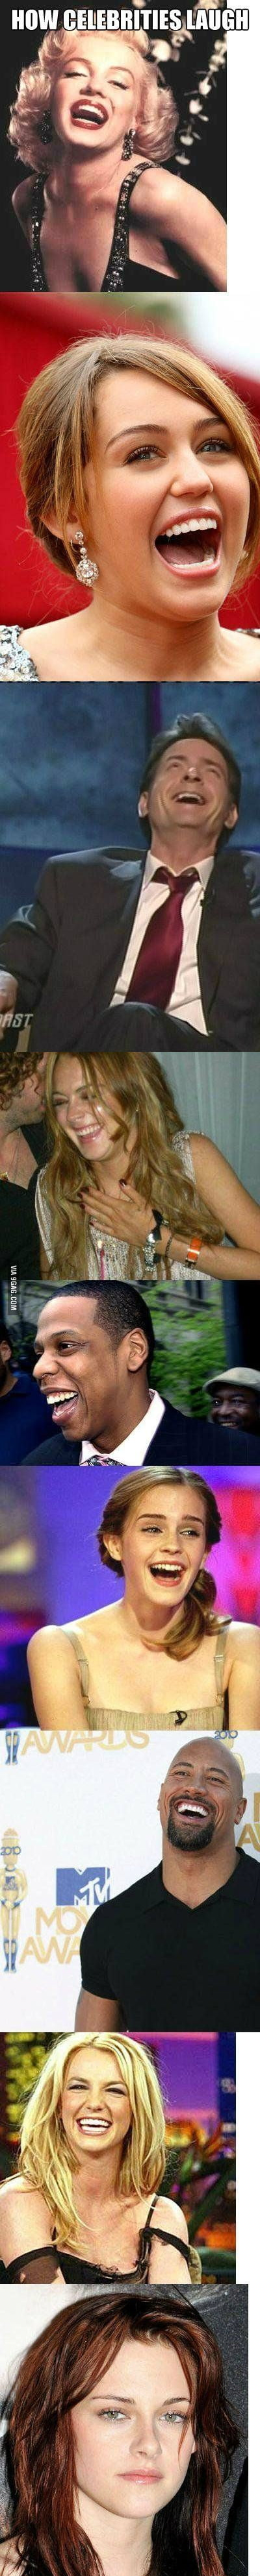 How Celebrities Laugh.